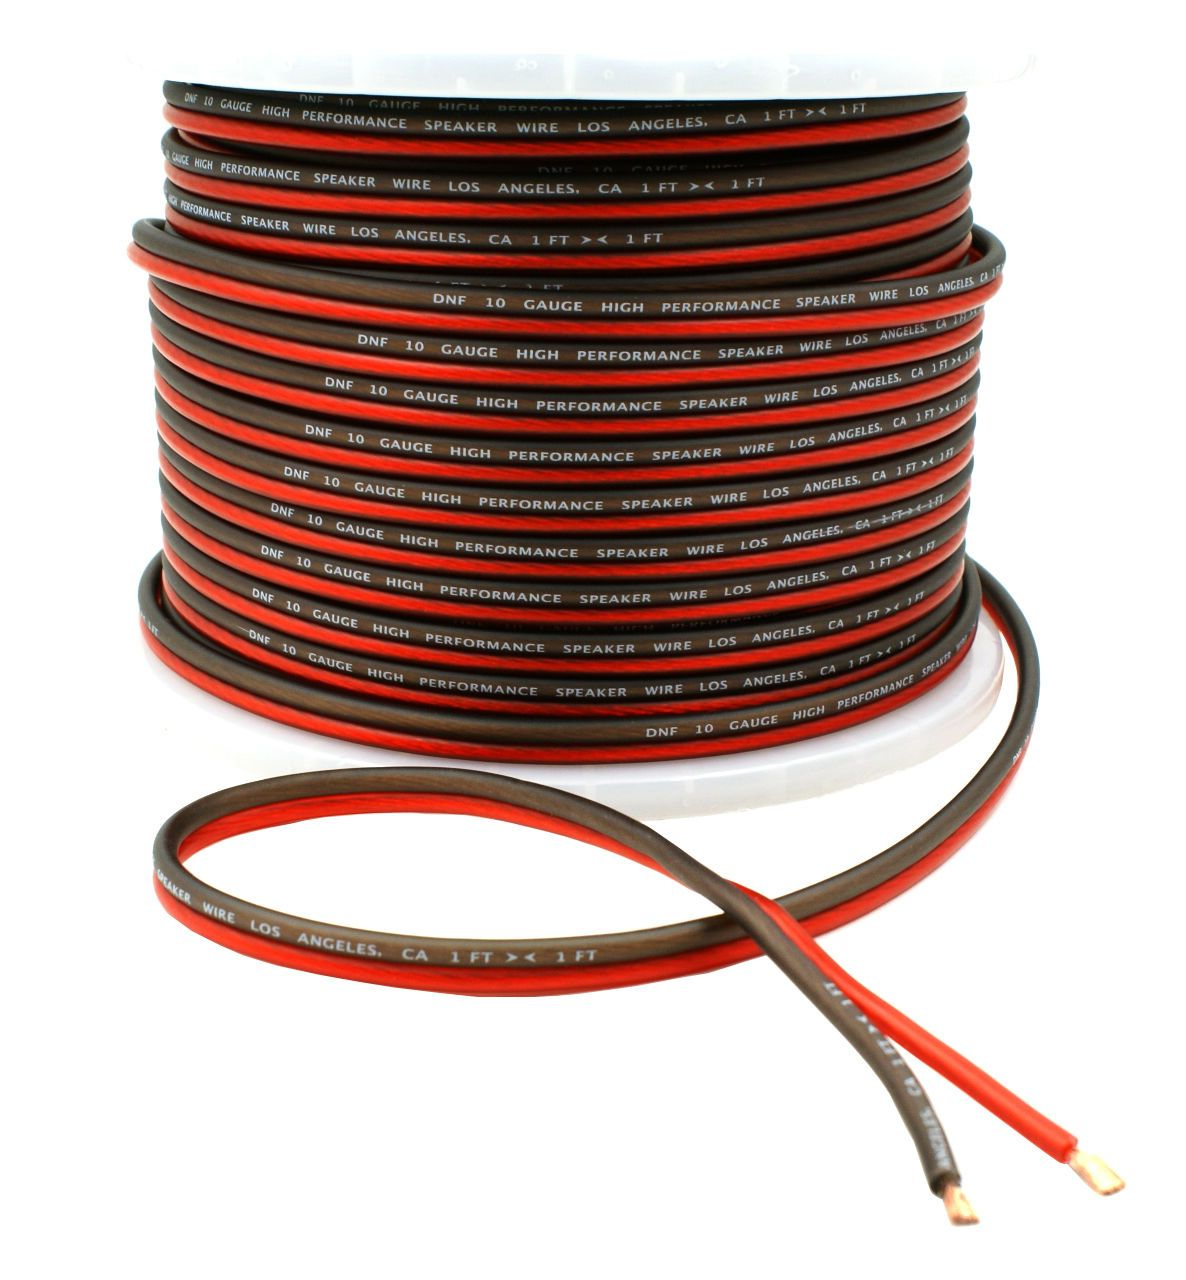 Dnf Car Audio Home Speaker Wire 10 Gauge 250 Feet High Performance Wiring Us Deals Cable 3465 End Date Wednesday Jul 4 2018usdeals